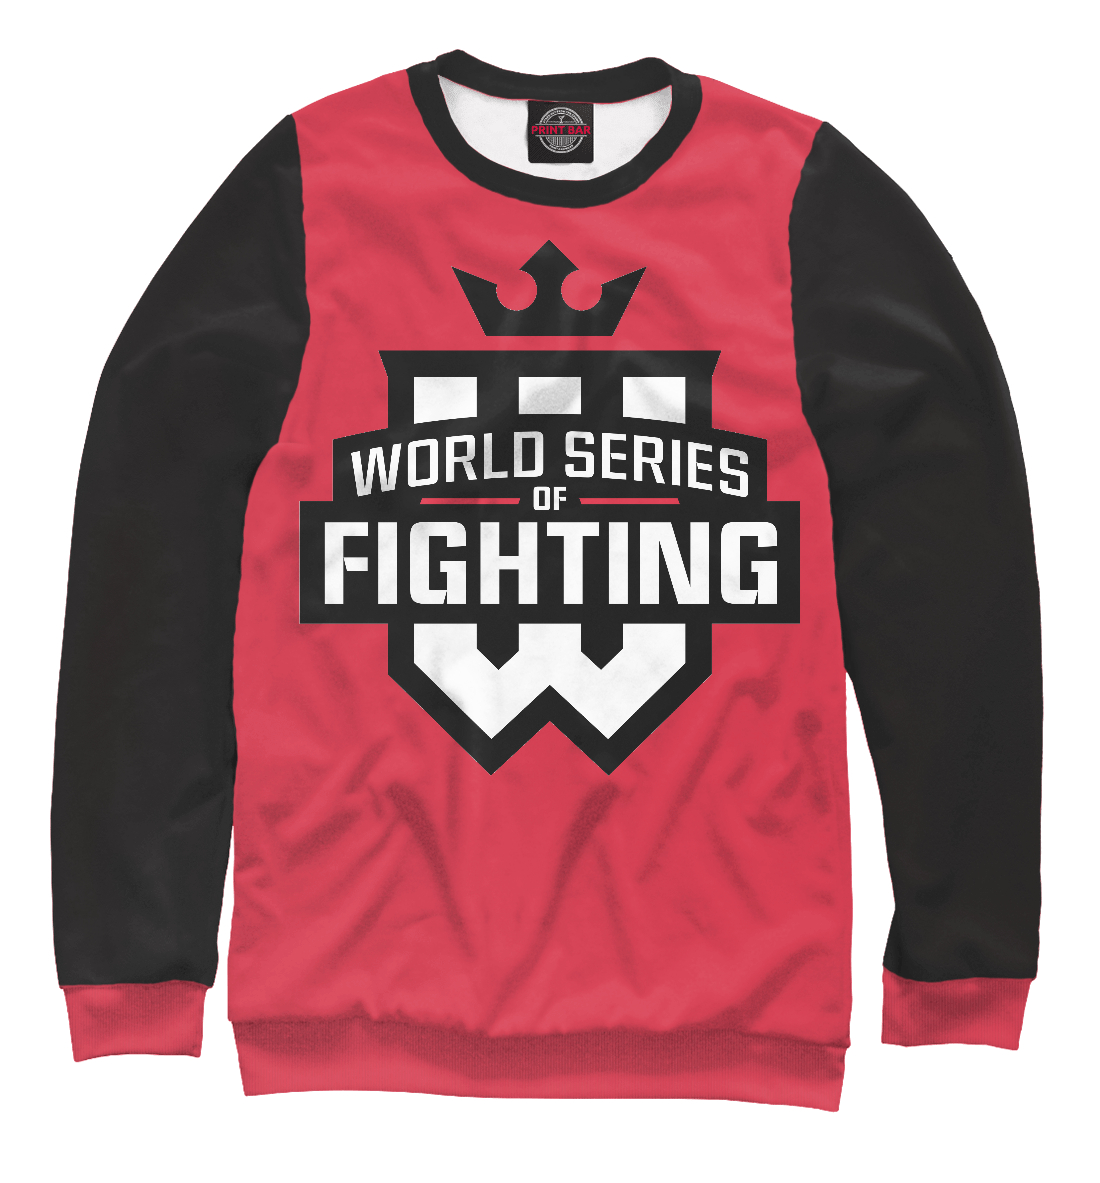 Купить WSOF: World Series Of Fighting, Printbar, Свитшоты, MNU-671710-swi-1